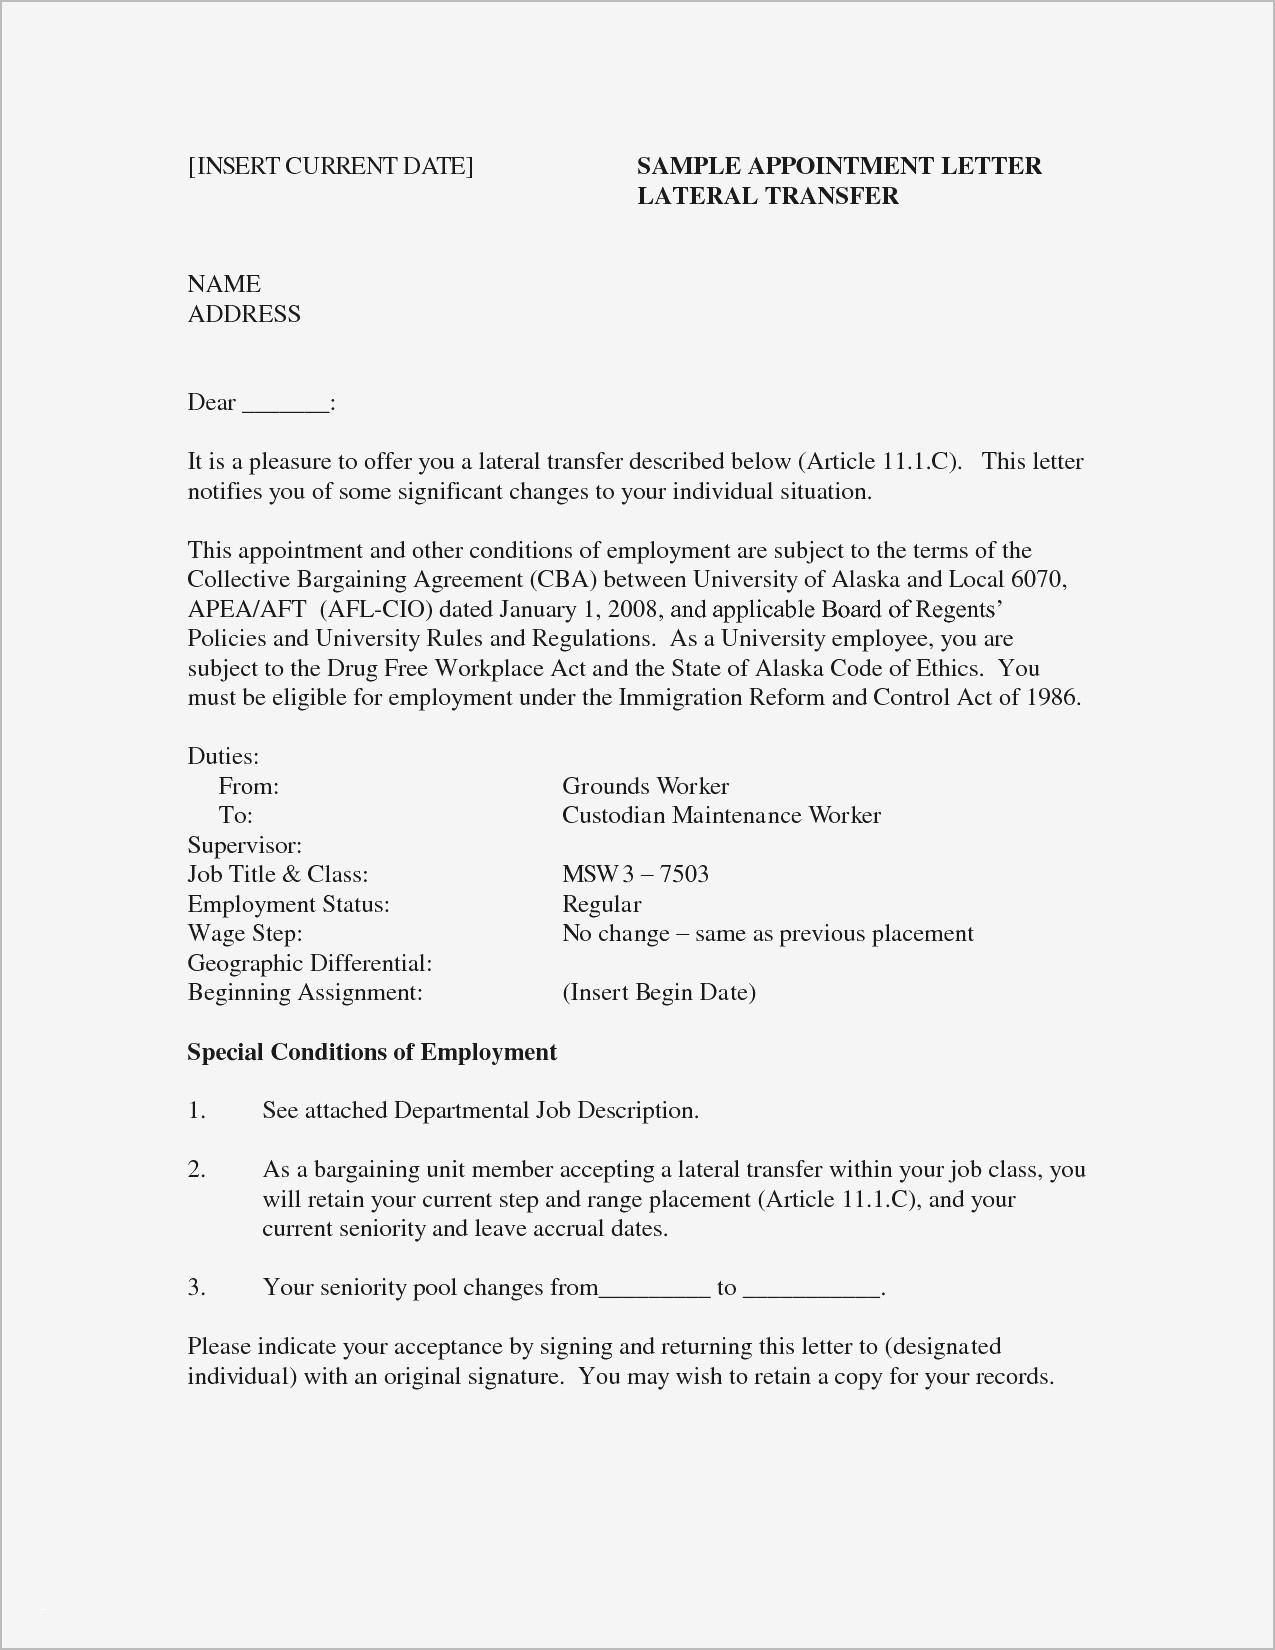 016 Resume For No Previous Work Experience Awesome Education Job Sample Of How To Write Research Paper Online Sensational A Course Full